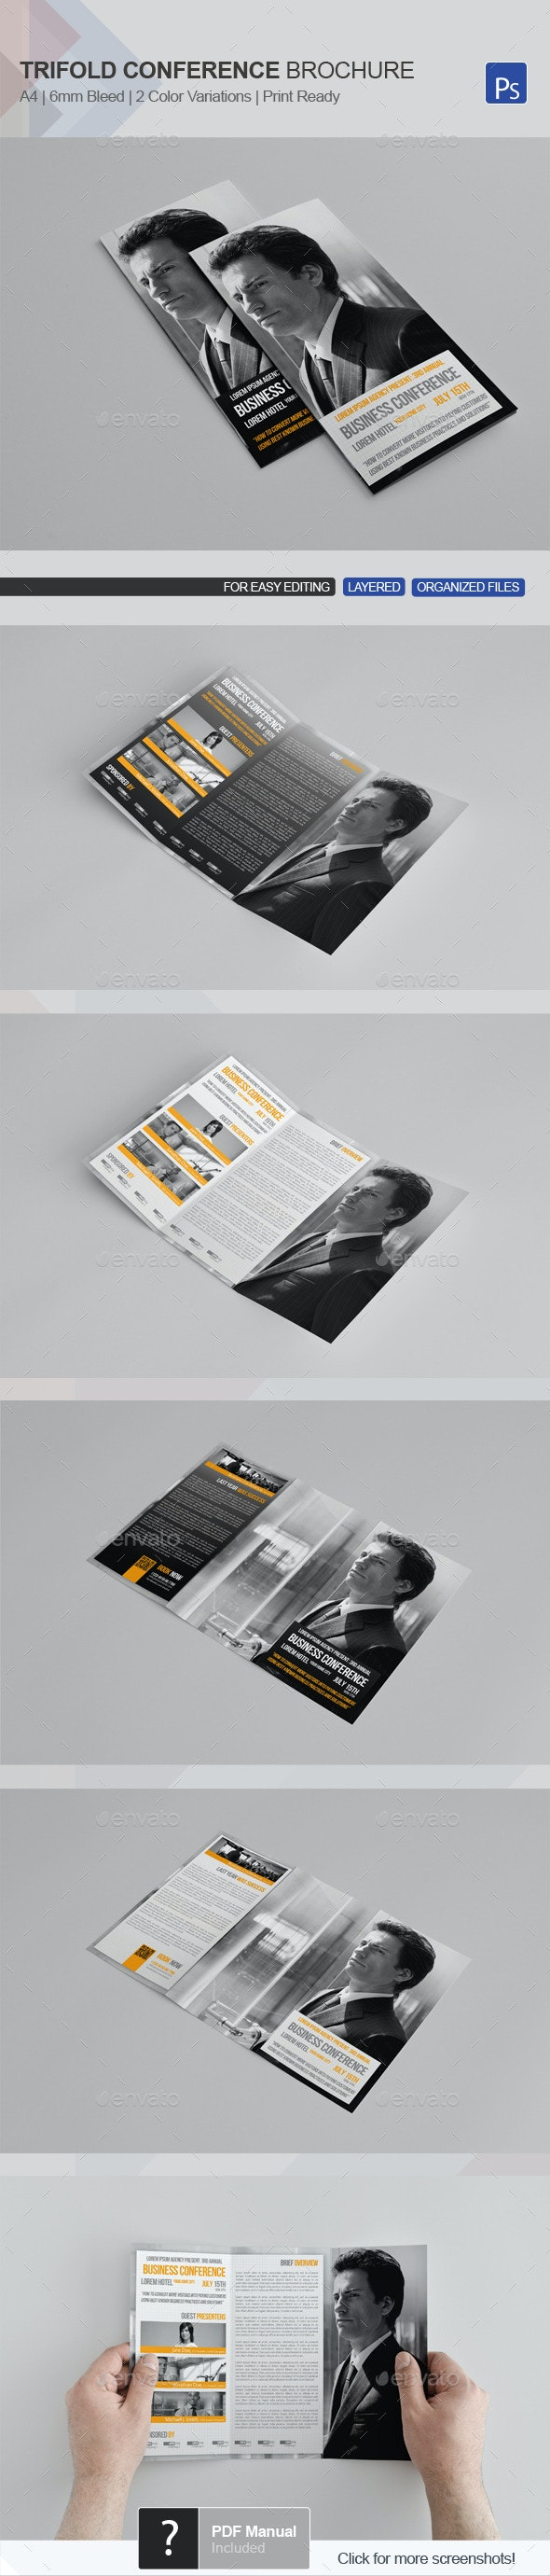 Trifold Business Conference Brochure Template - Corporate Brochures